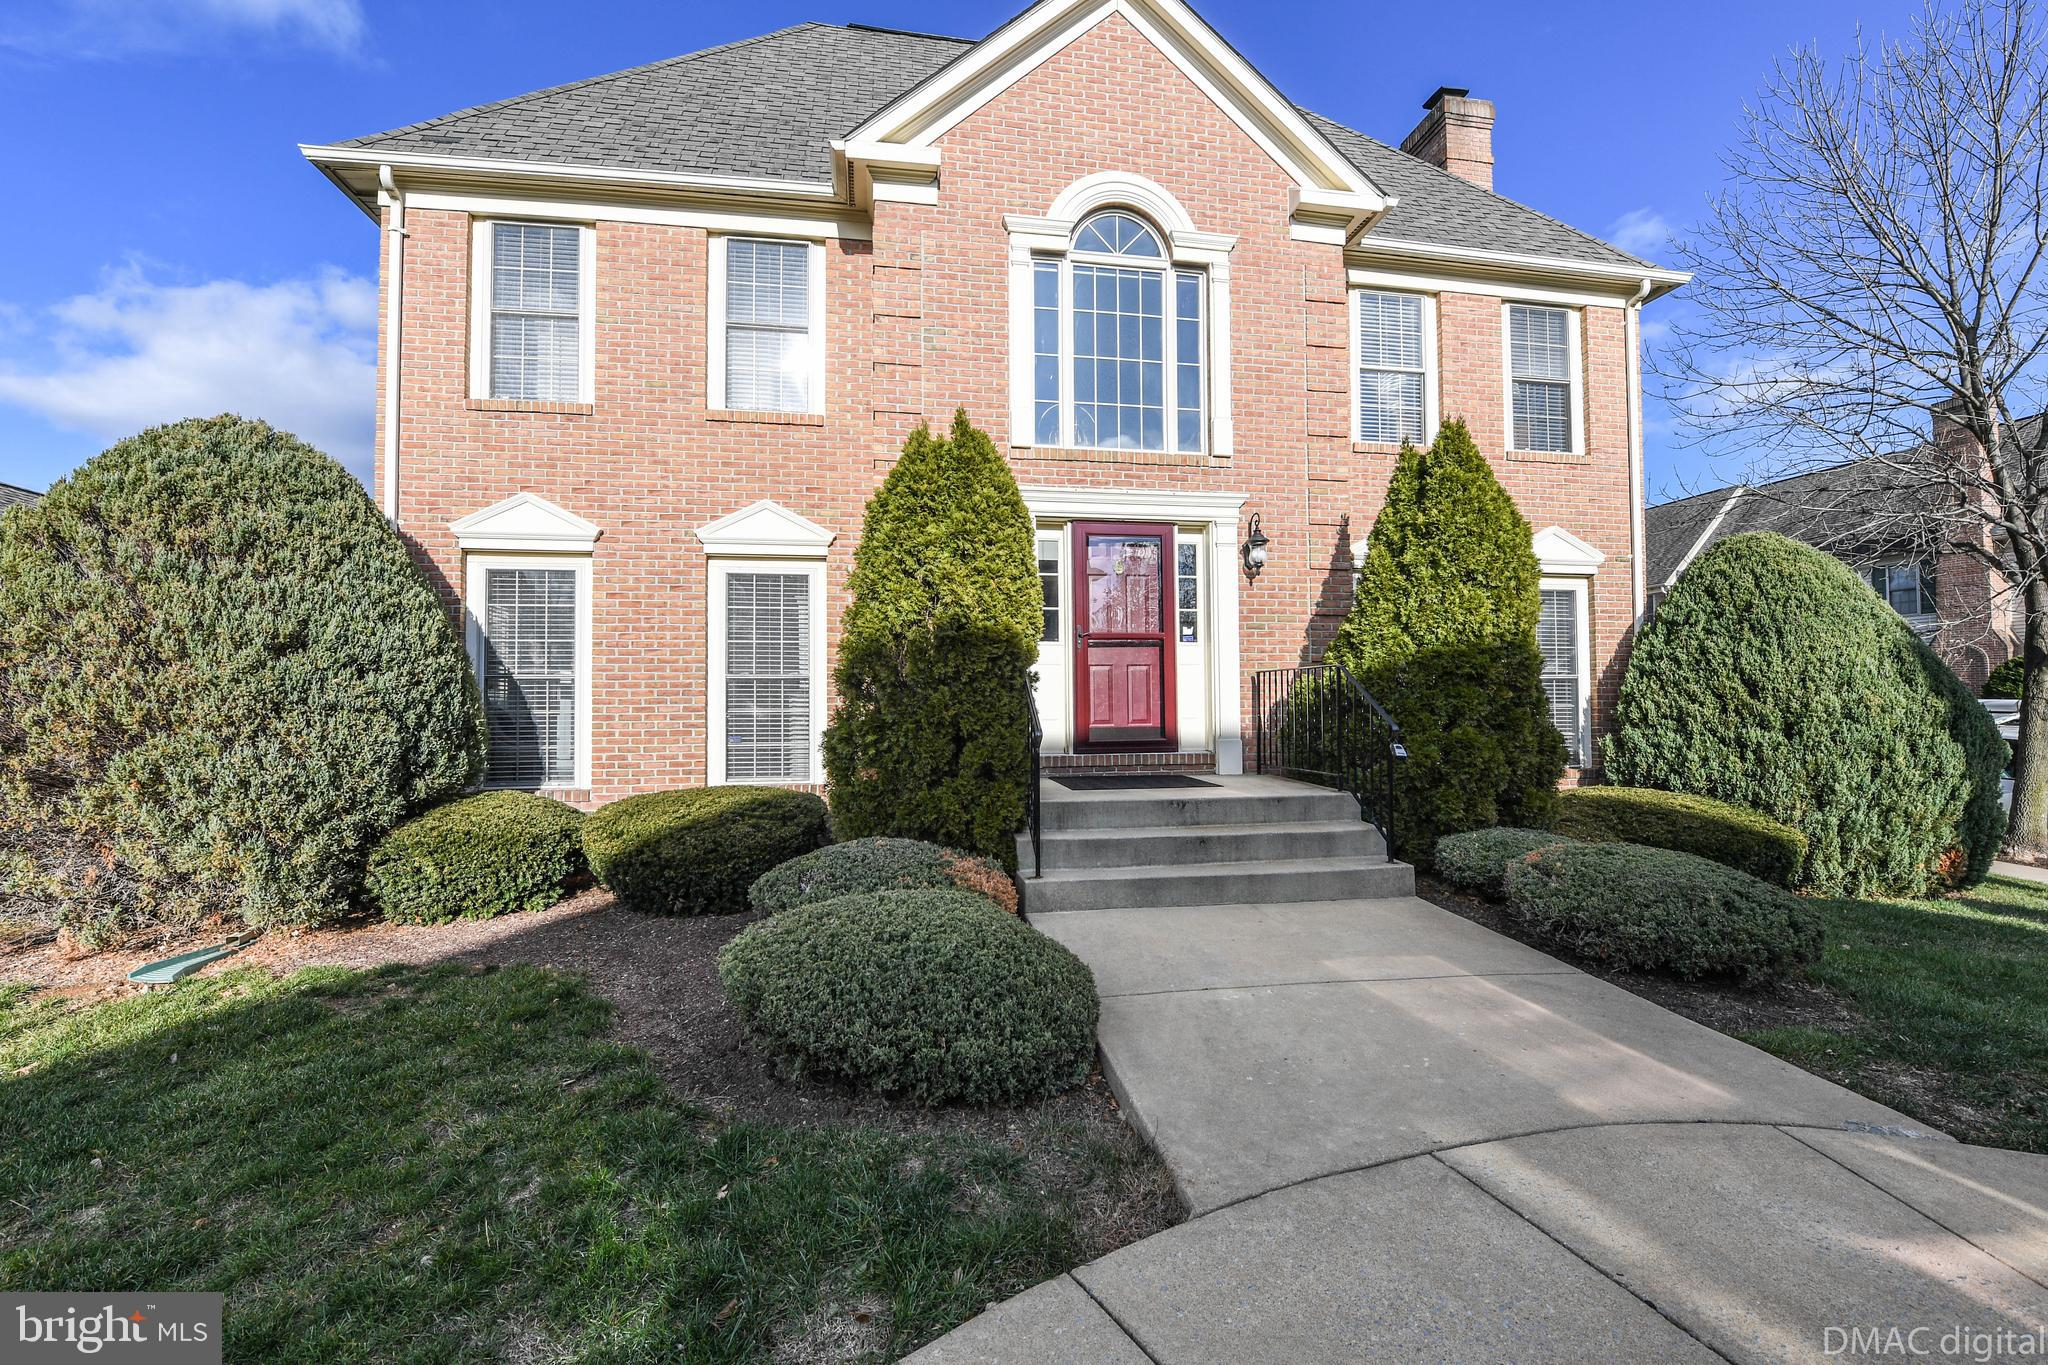 Gorgeous end unit townhome located in Wormans Mill. Walking distance to center square of Wormans Mil